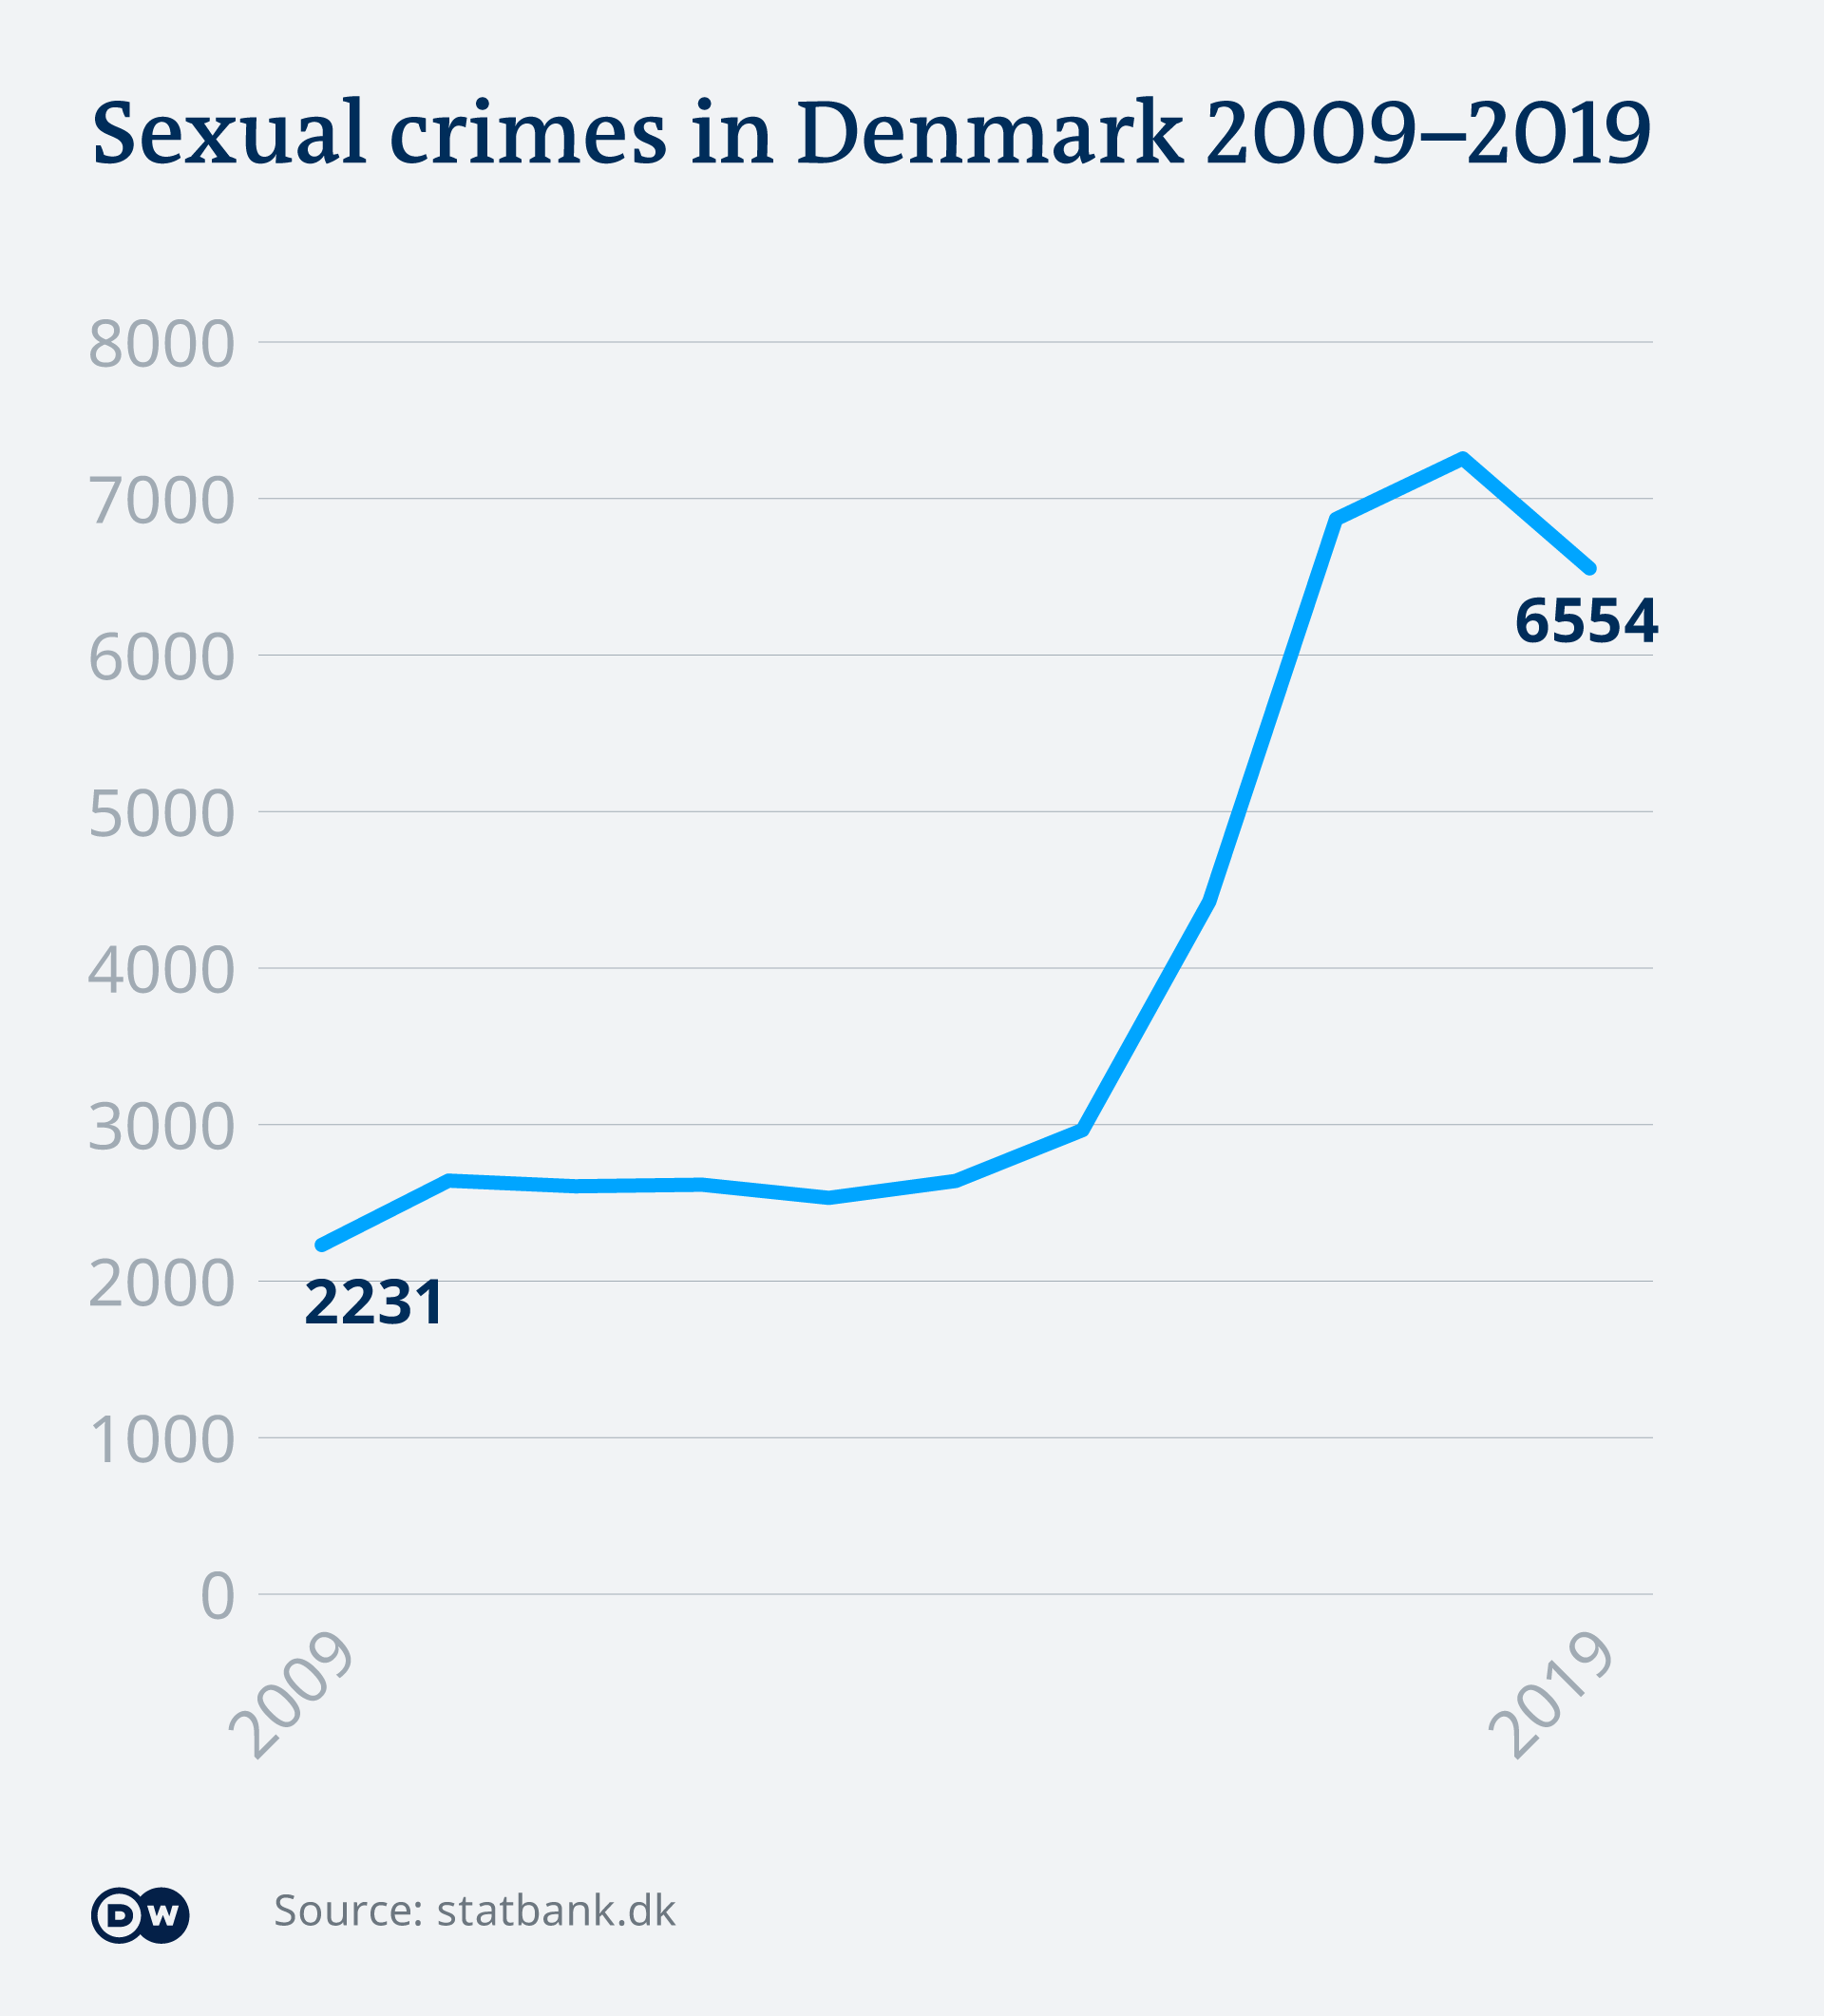 An infographic showing the rate of sexual crimes in Denmark from 2009-2019